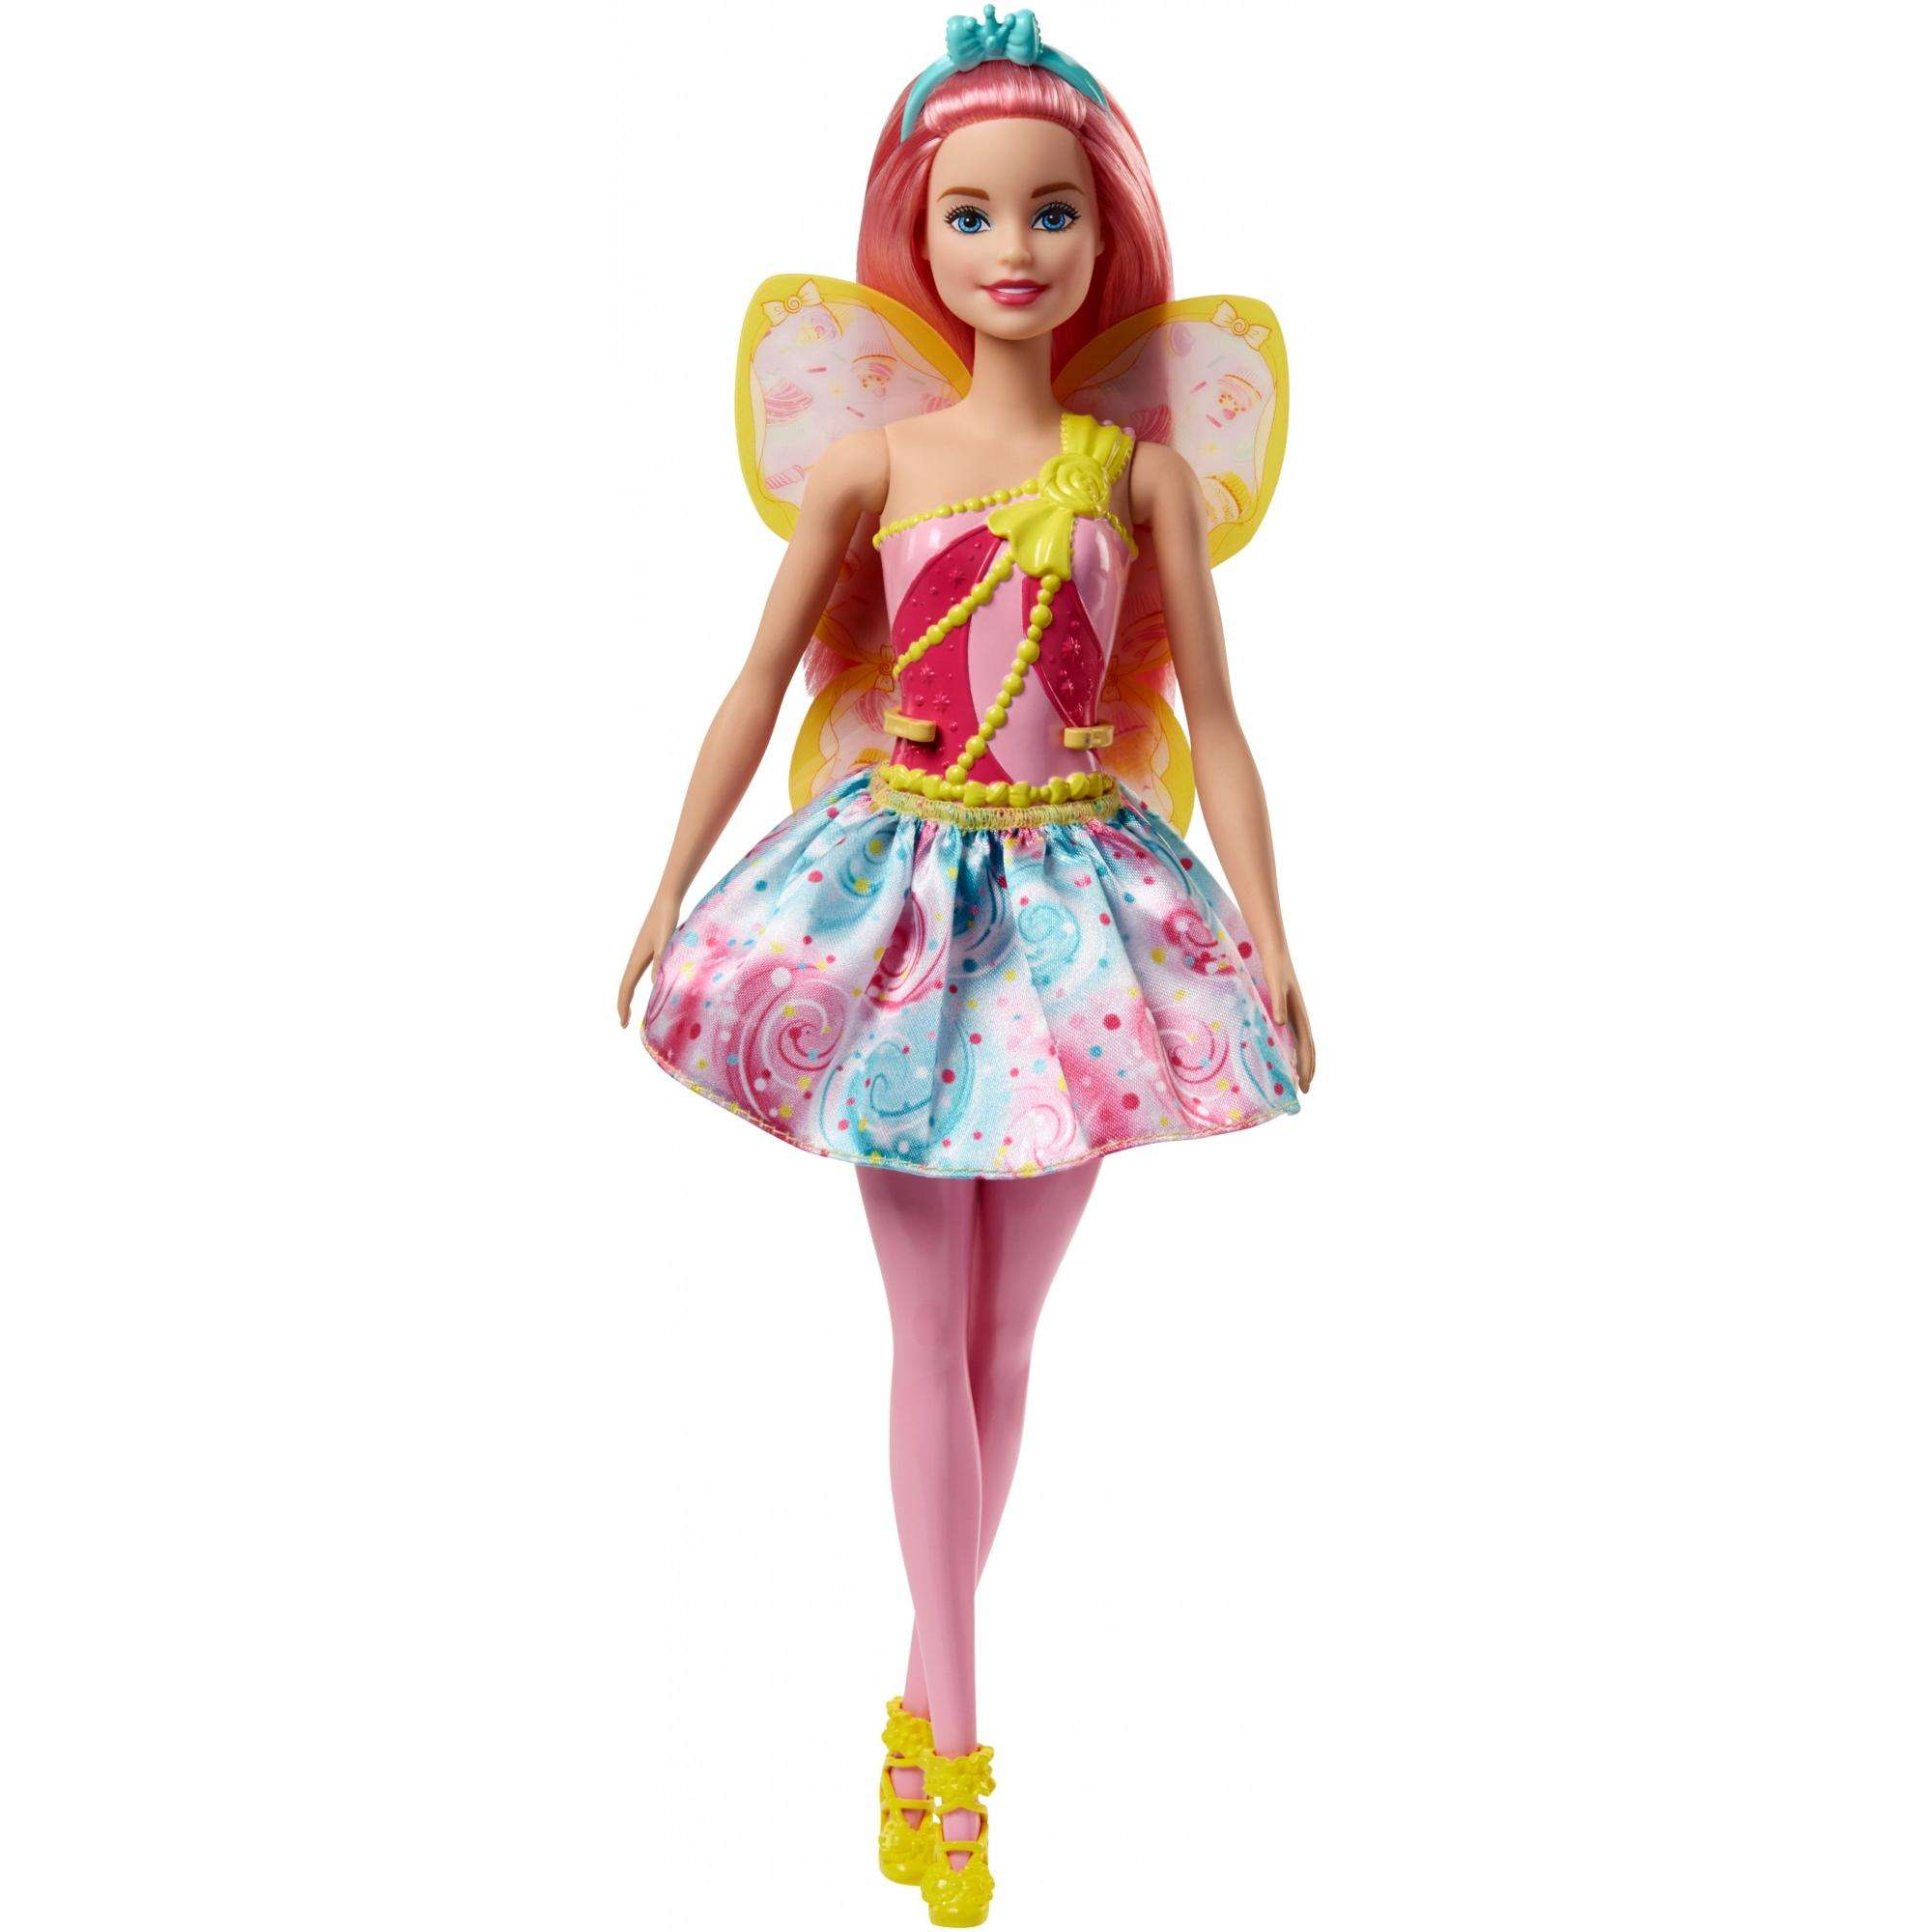 Barbie Dreamtopia Fairy Doll, Pink